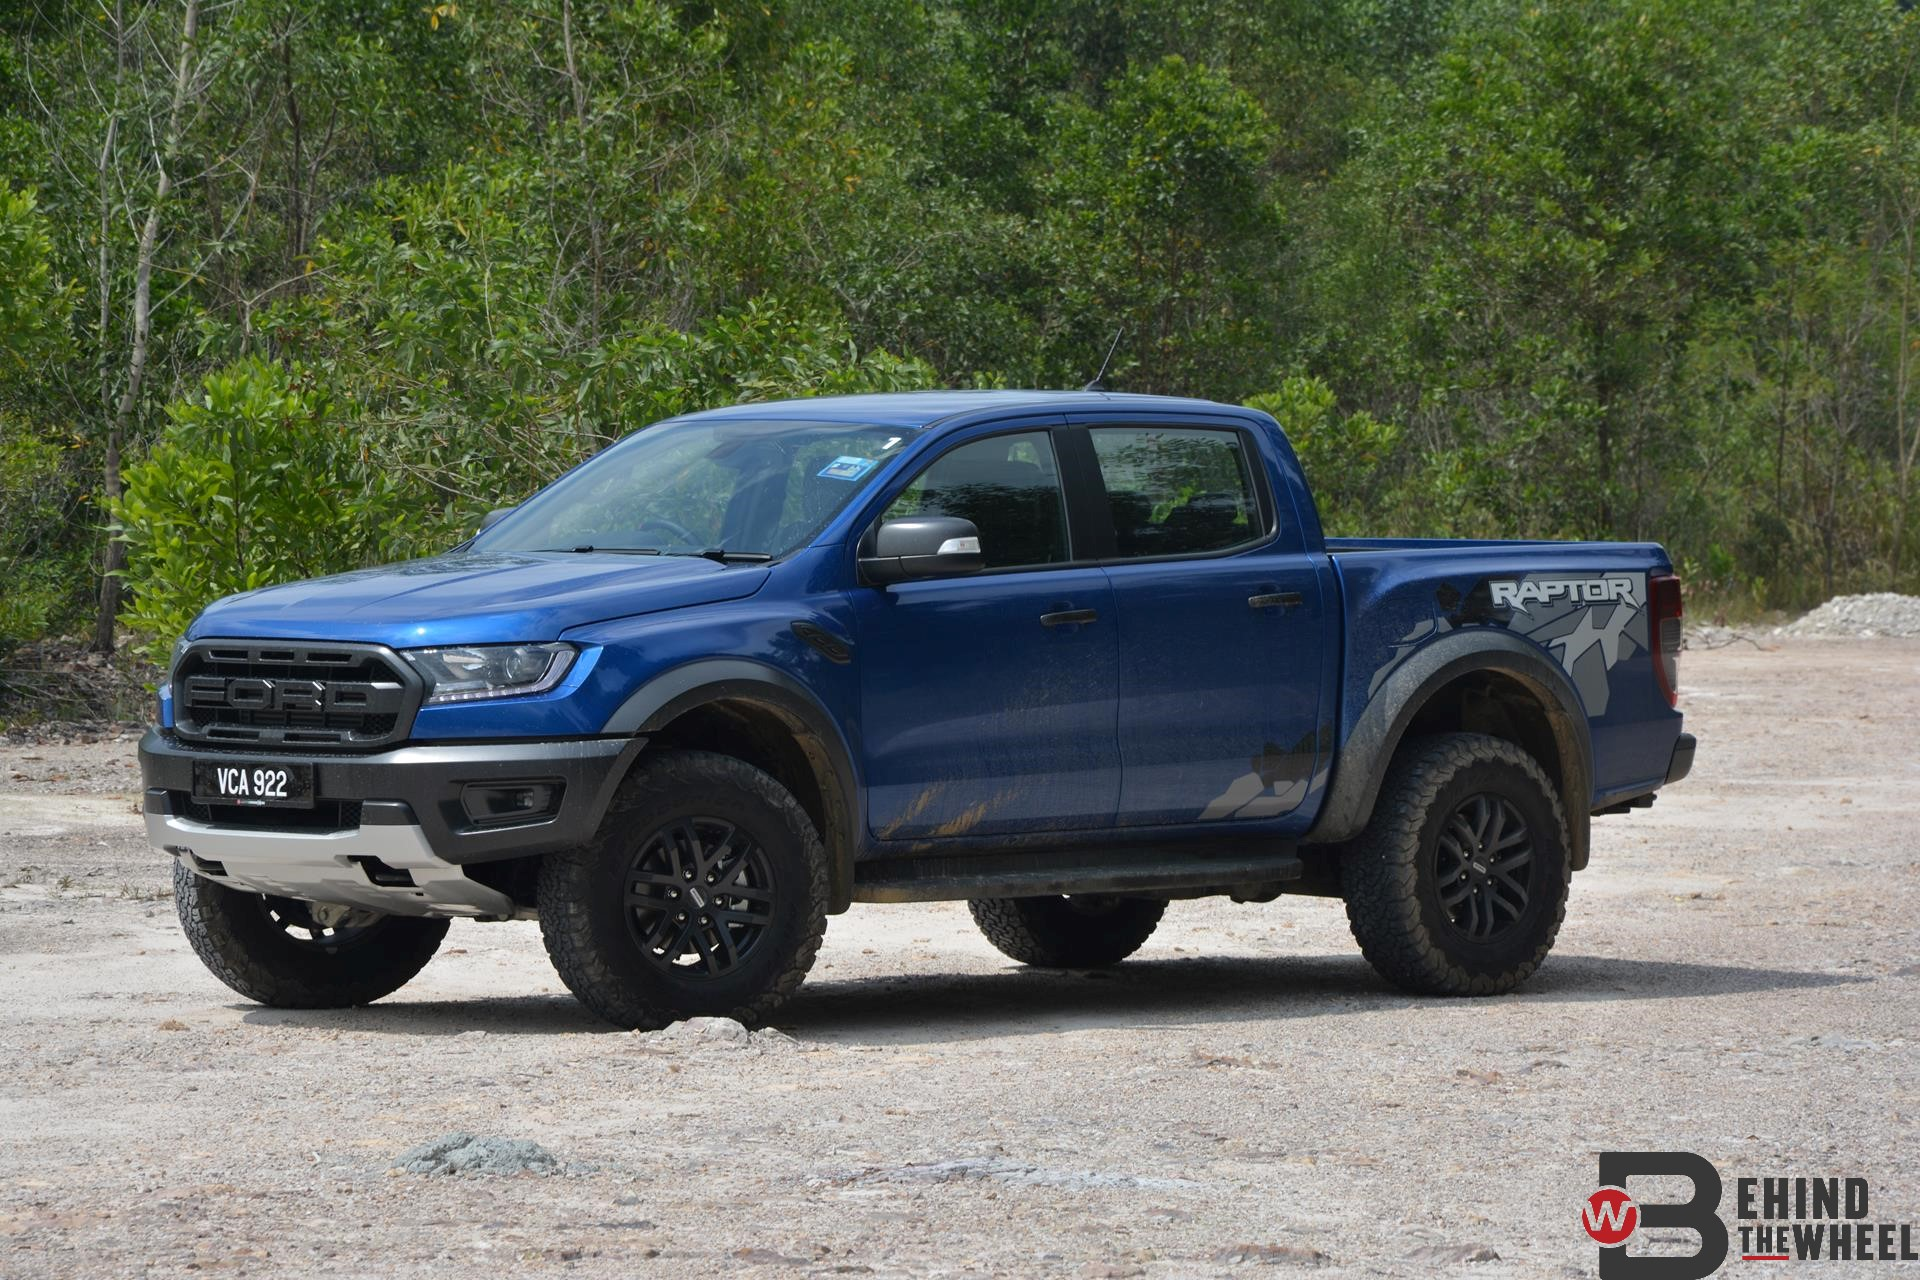 Ford Ranger Raptor review: Not the truck we need but the truck we